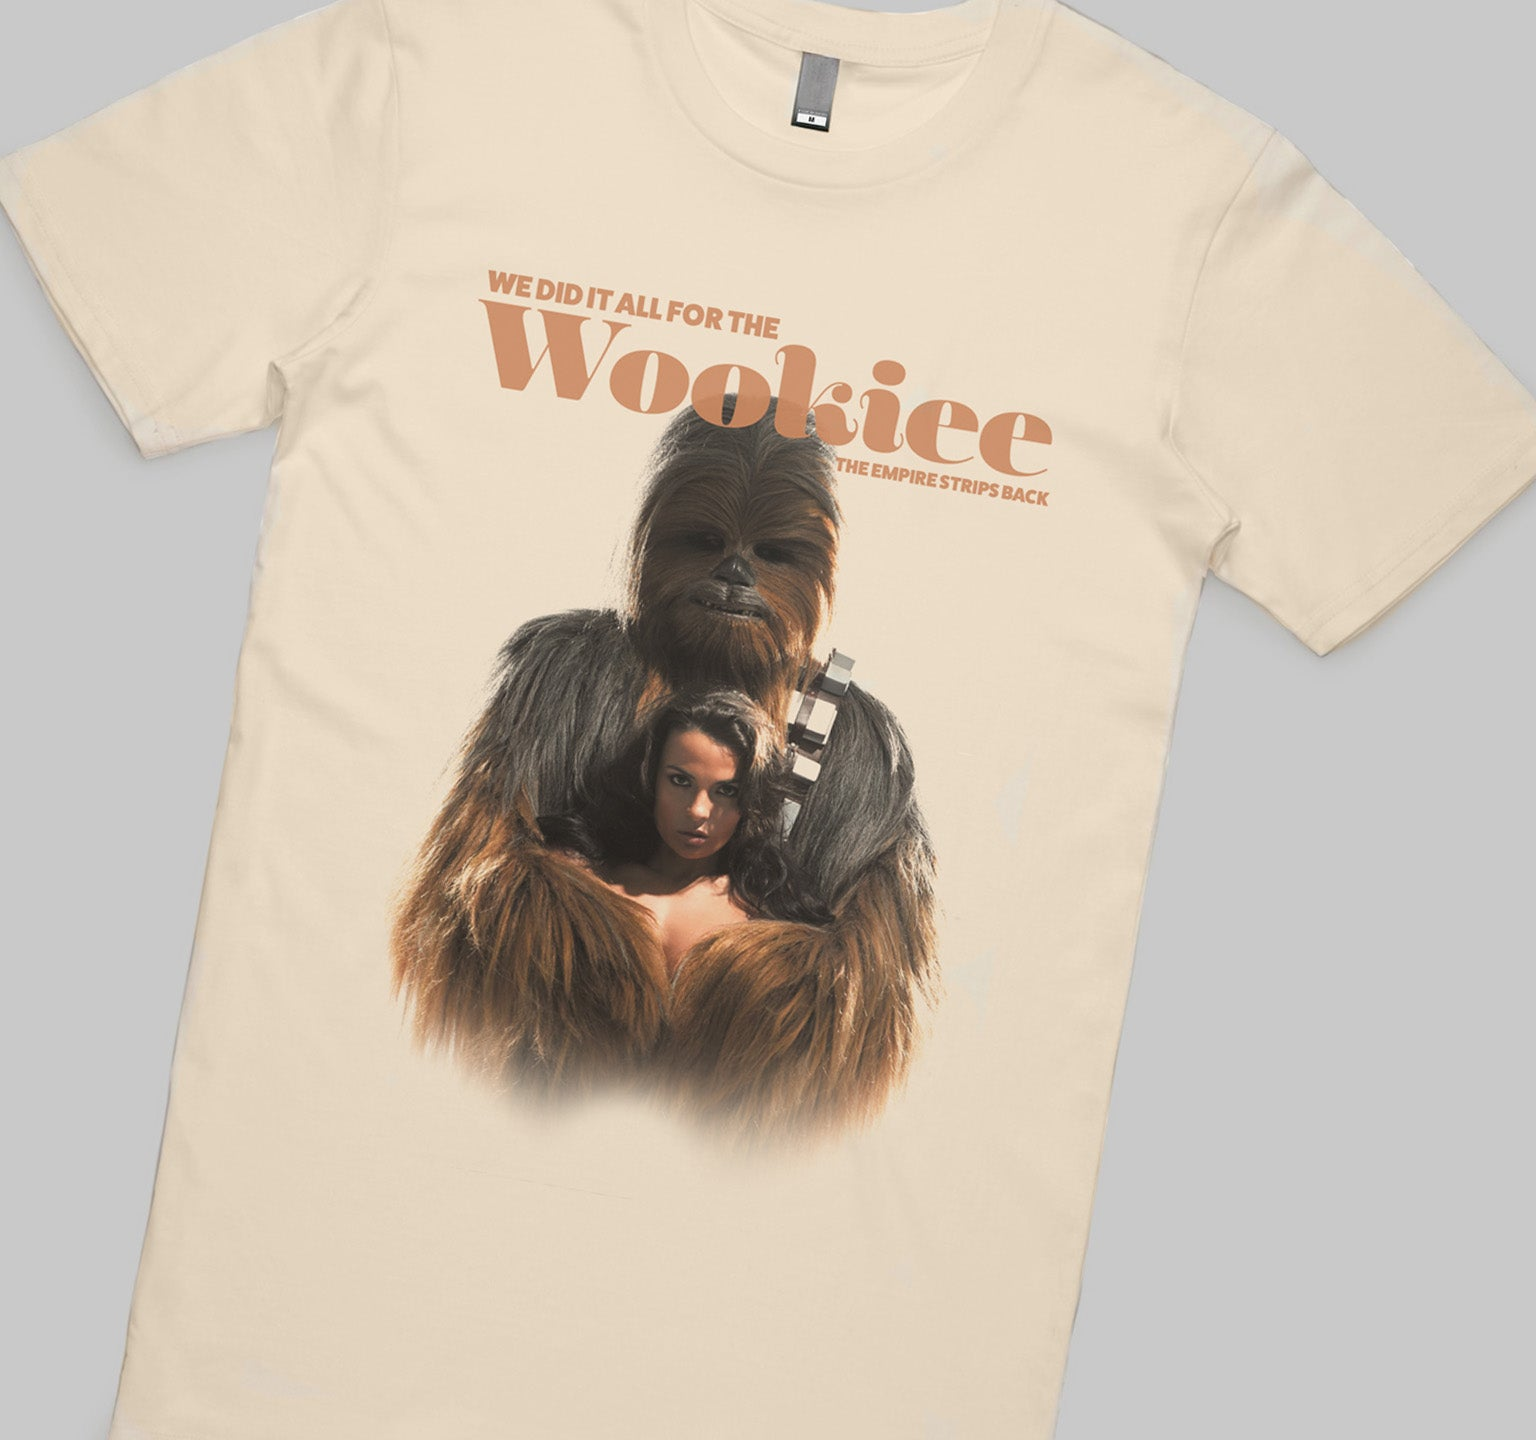 Empire Strips Back -  We did it all for the Wookiee T-Shirt